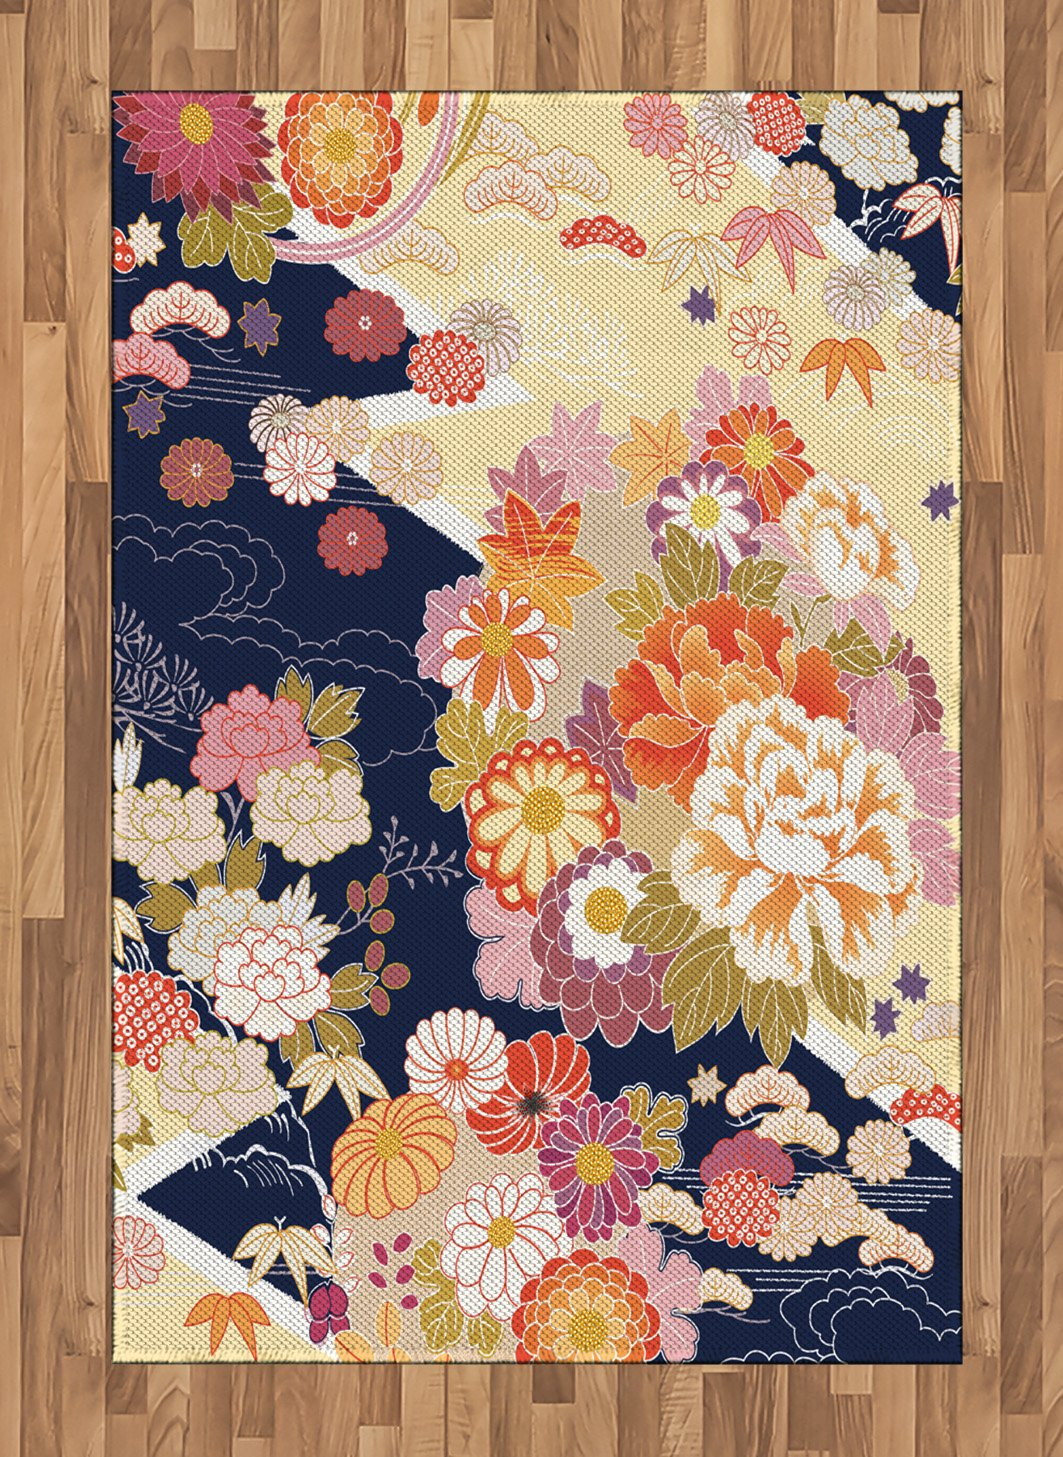 Ambesonne Japanese Area Rug Traditional Kimono Motifs Vintage Story Flower Chrysantemum 2 Composition Asian Ethnic Floral Patterns Artwork Flat Woven Accent For